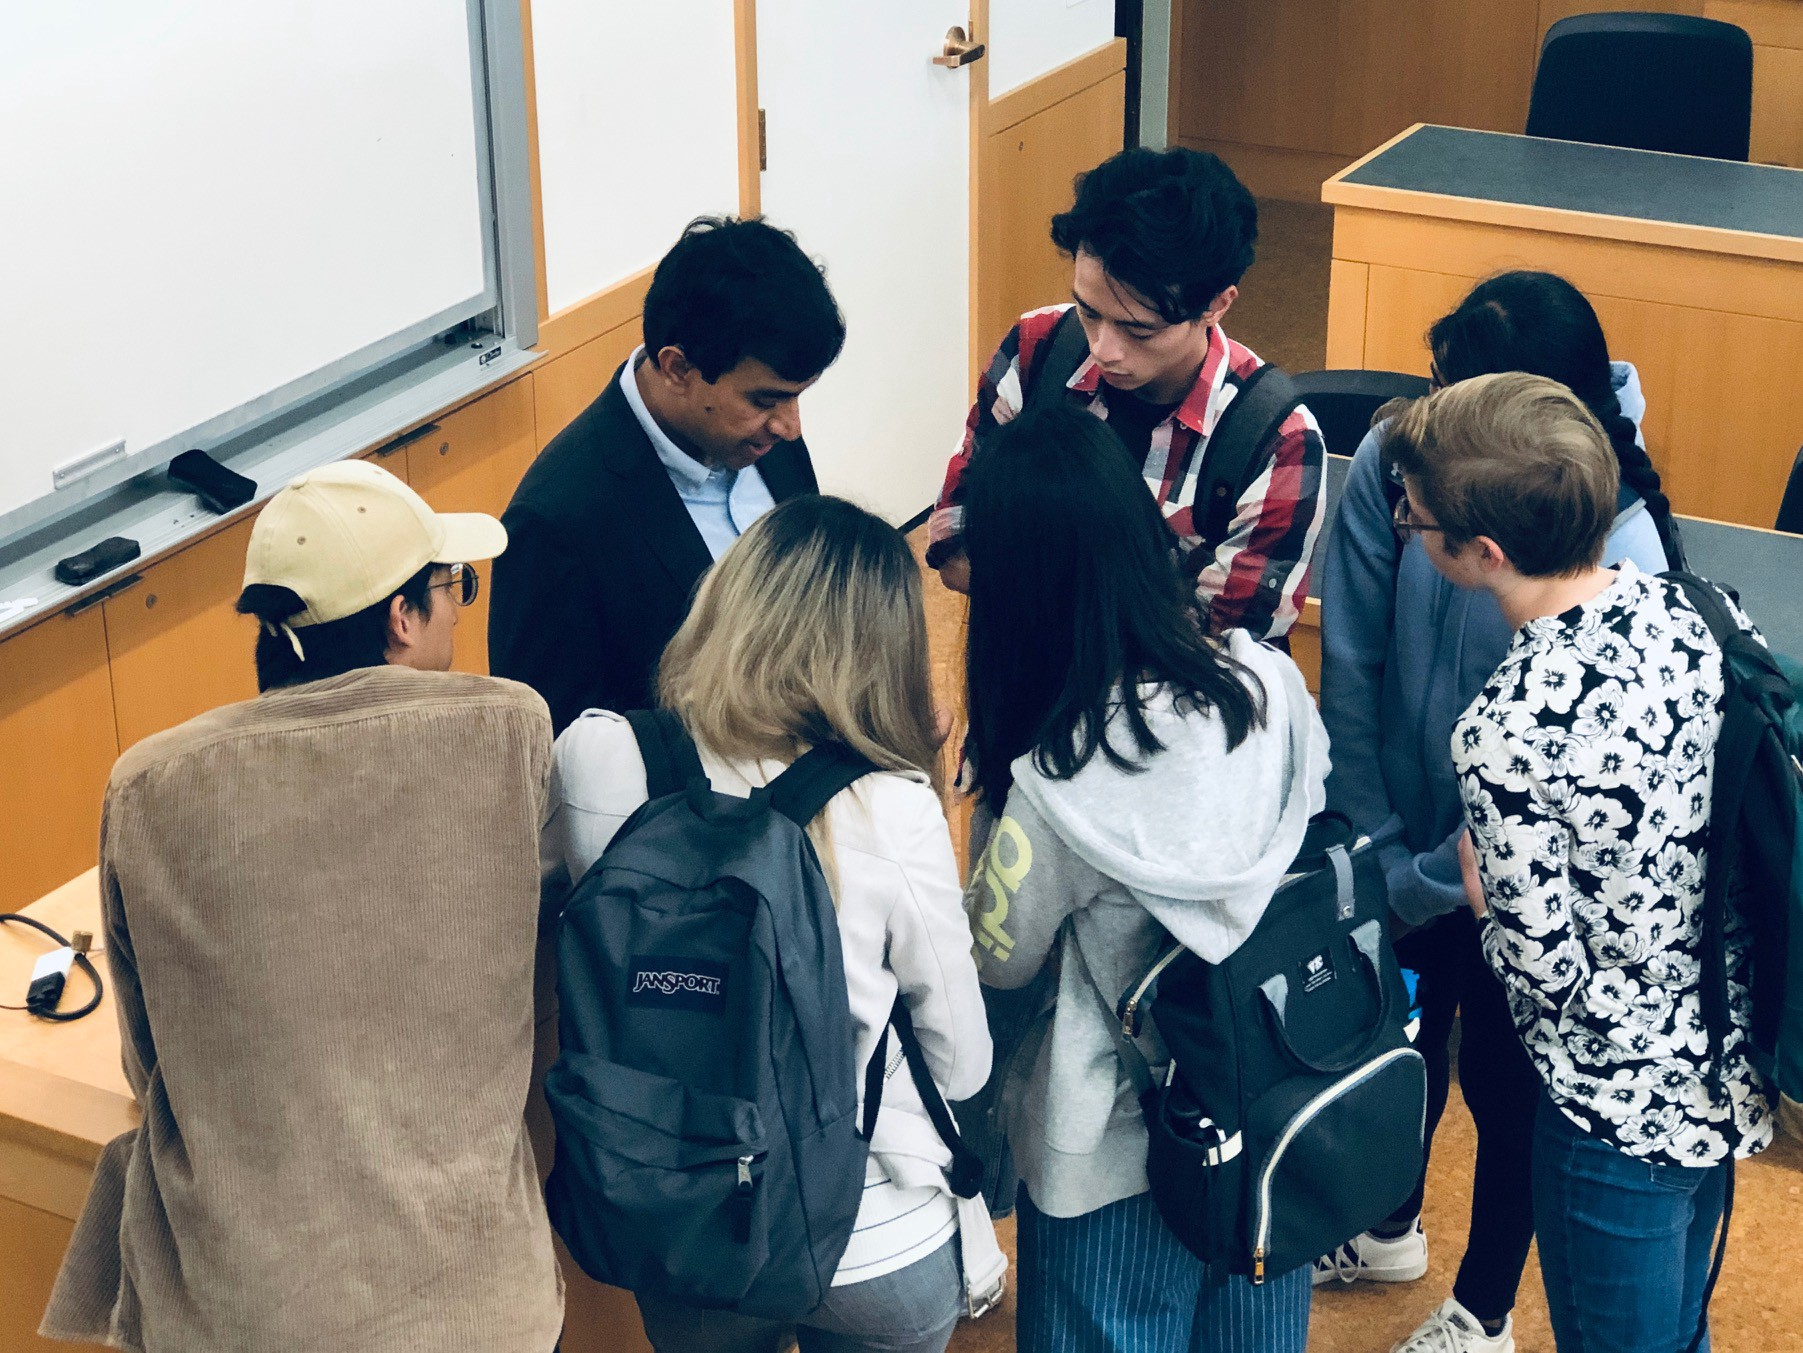 Atchin with a group of MEng students surrounding him in conversation.